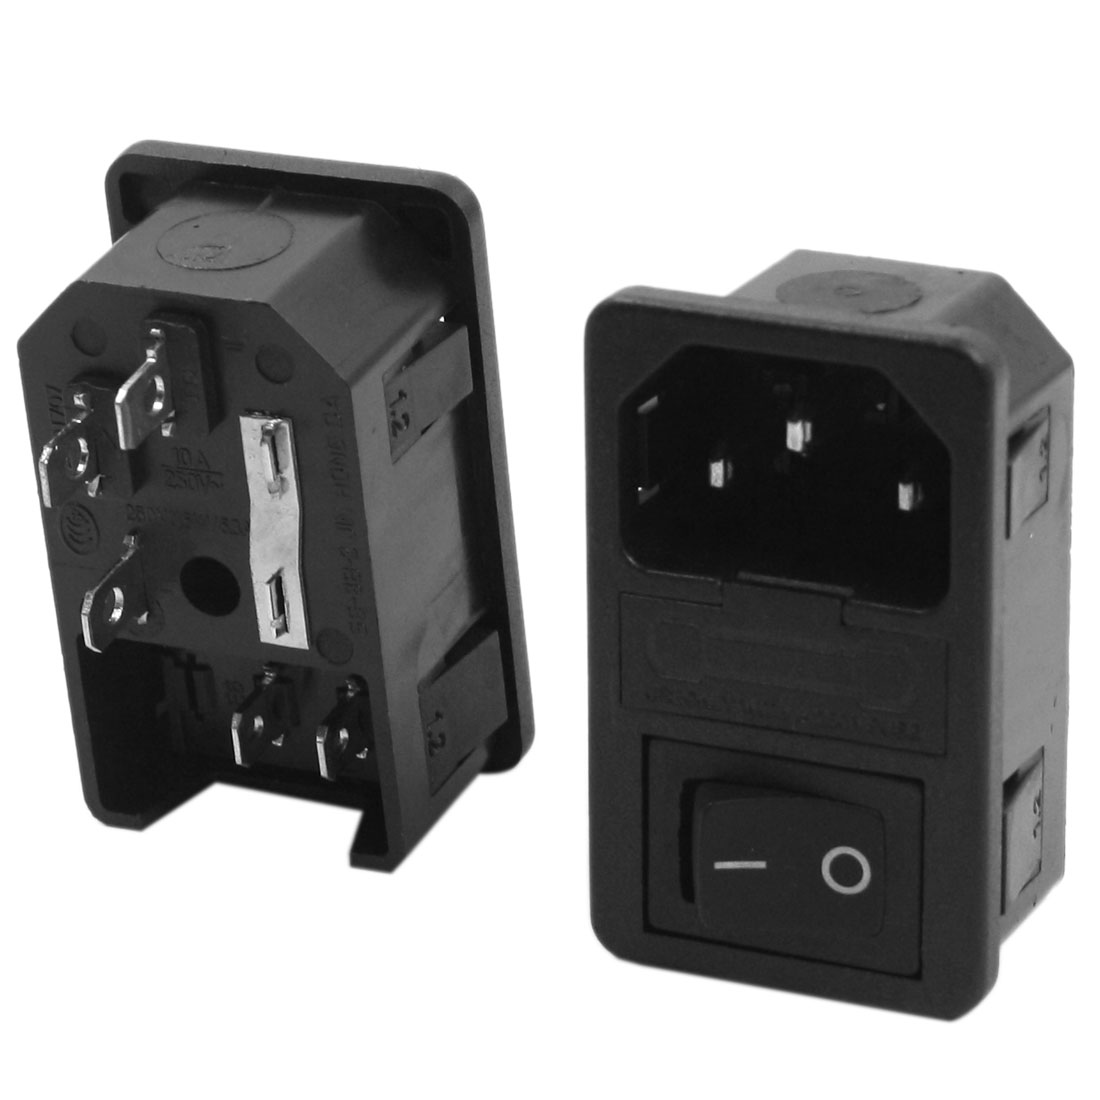 2Pcs Black Boat Switch Fuse Holder C14 Inlet Power Adapter AC 250V 10A